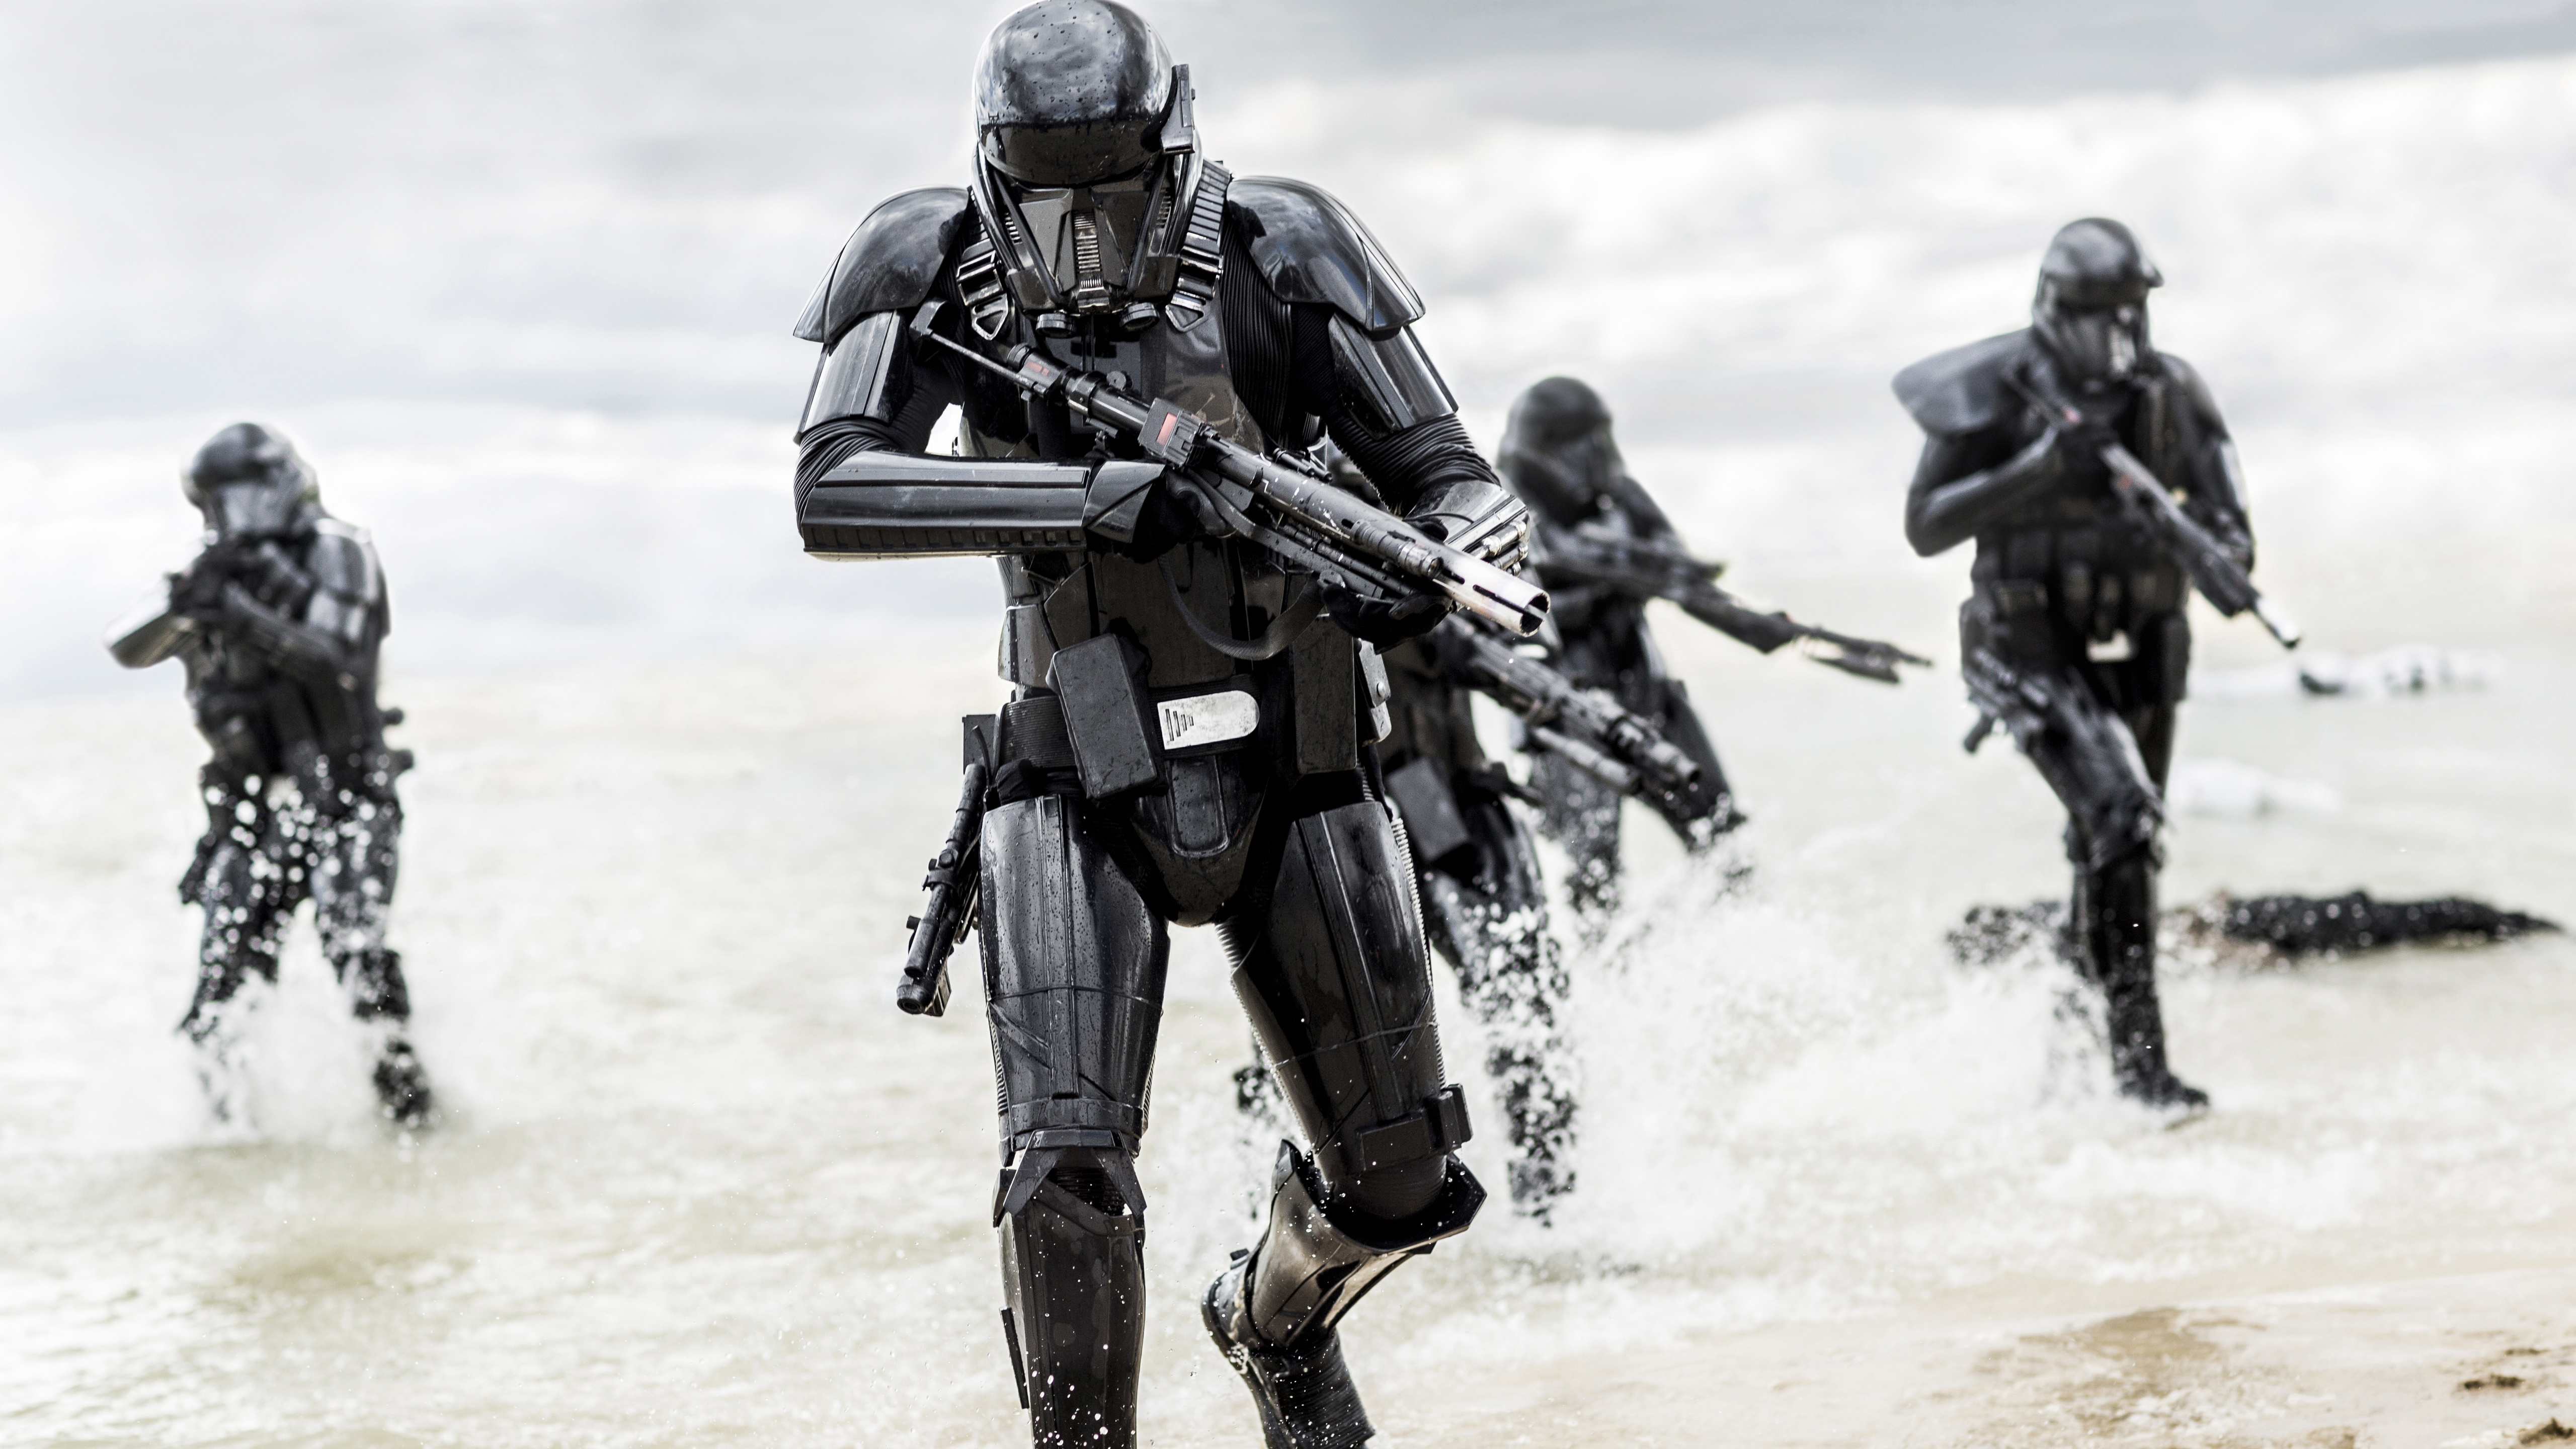 Stormtroopers 4k Wallpapers For Your Desktop Or Mobile